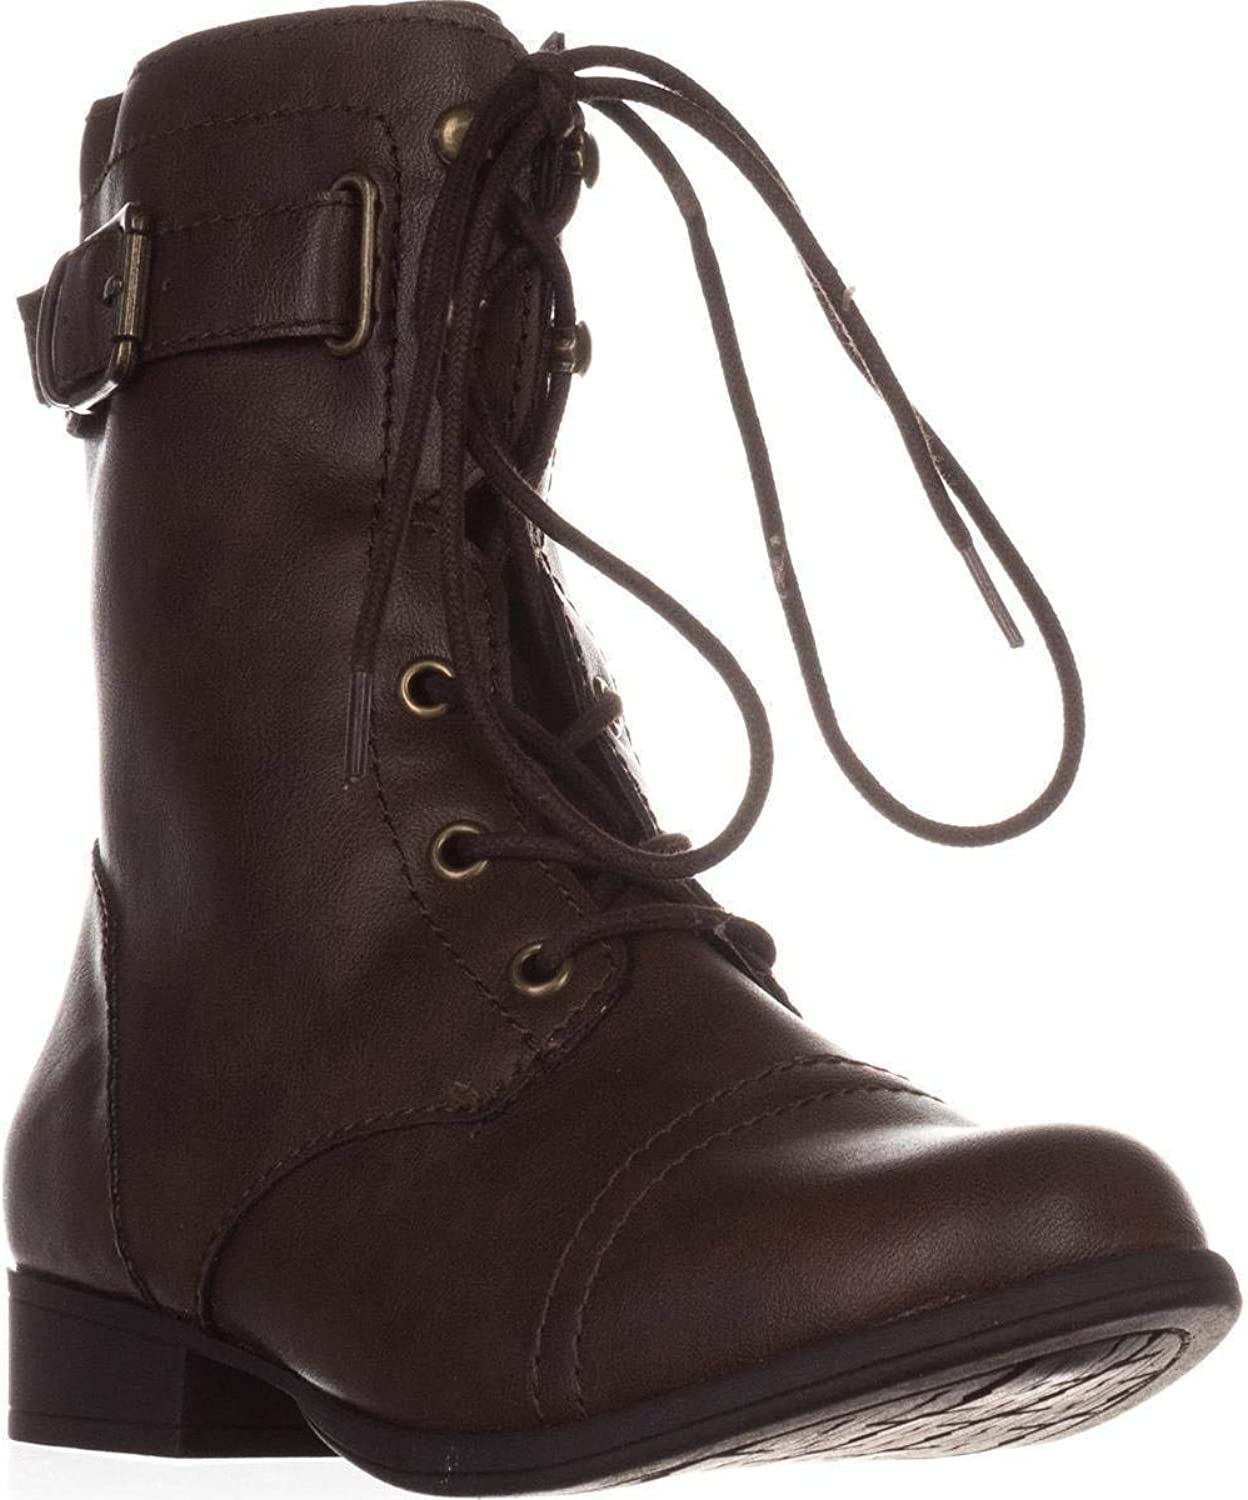 American Rag Womens Fionn Closed Toe Mid-Calf Combat Boots, Brown, Size 6.5